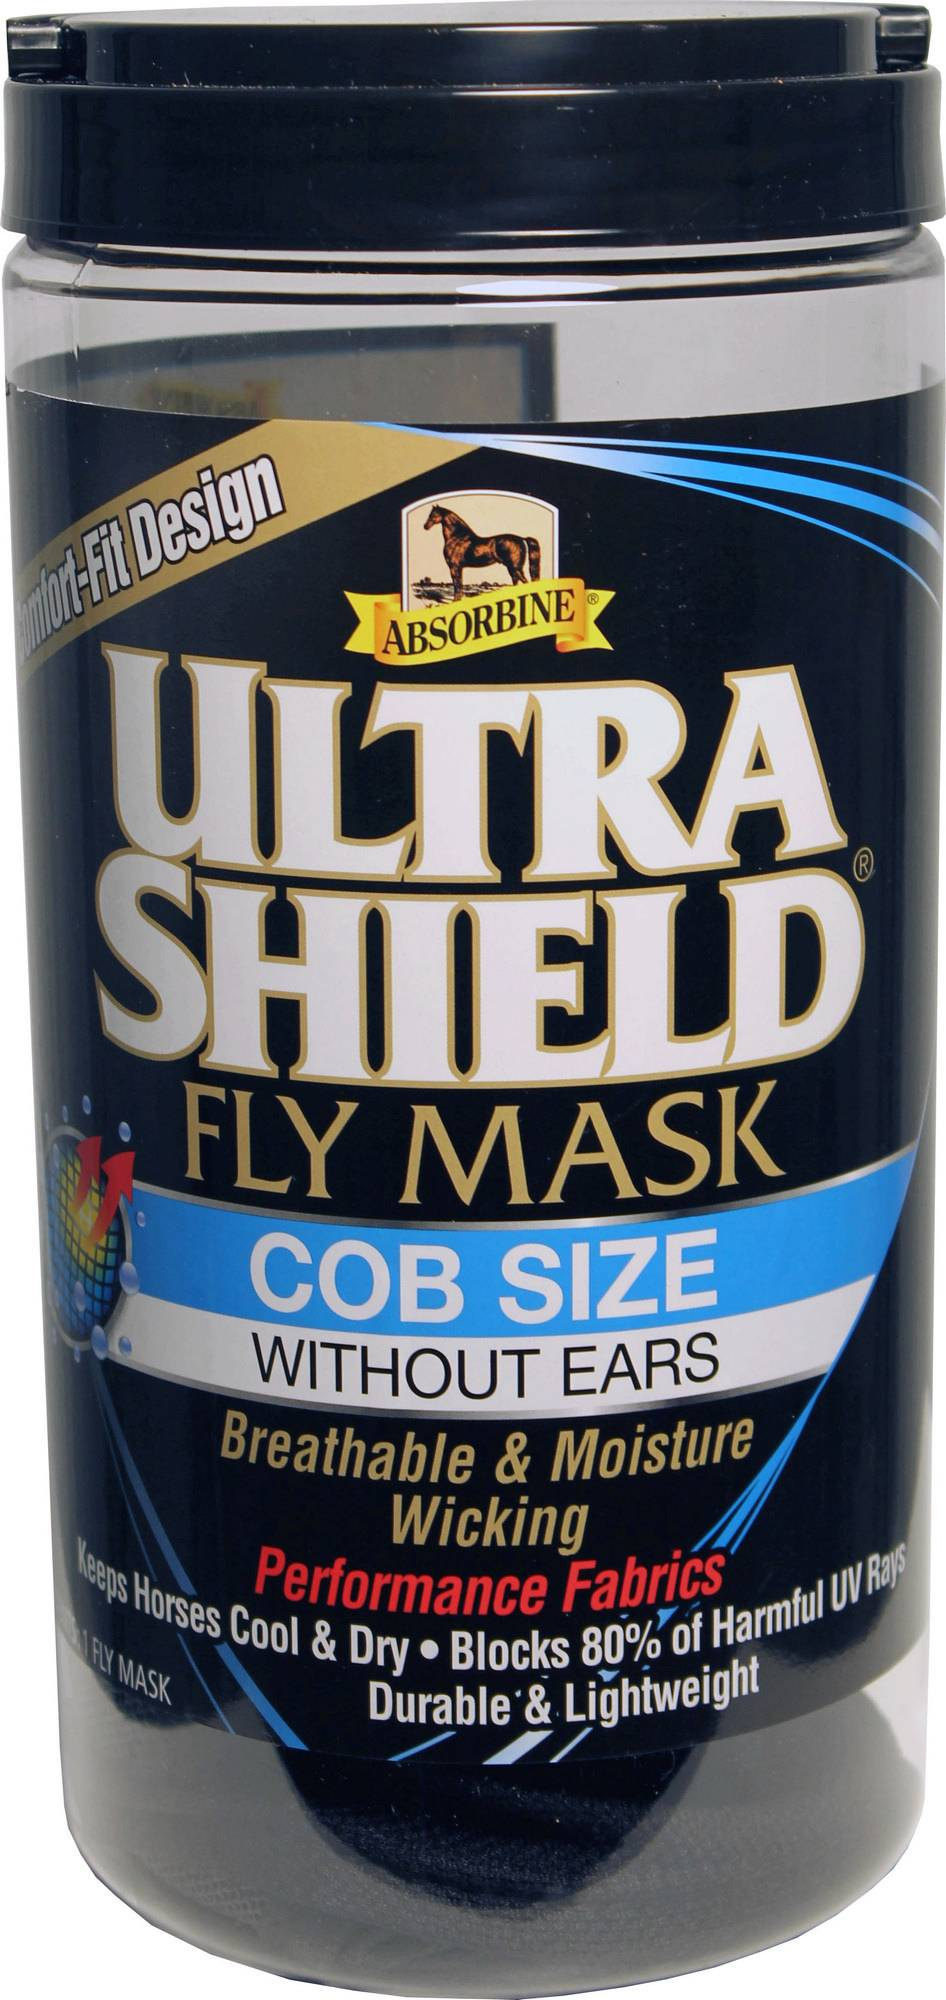 Absorbine Ultrashield Fly Mask Without Ears